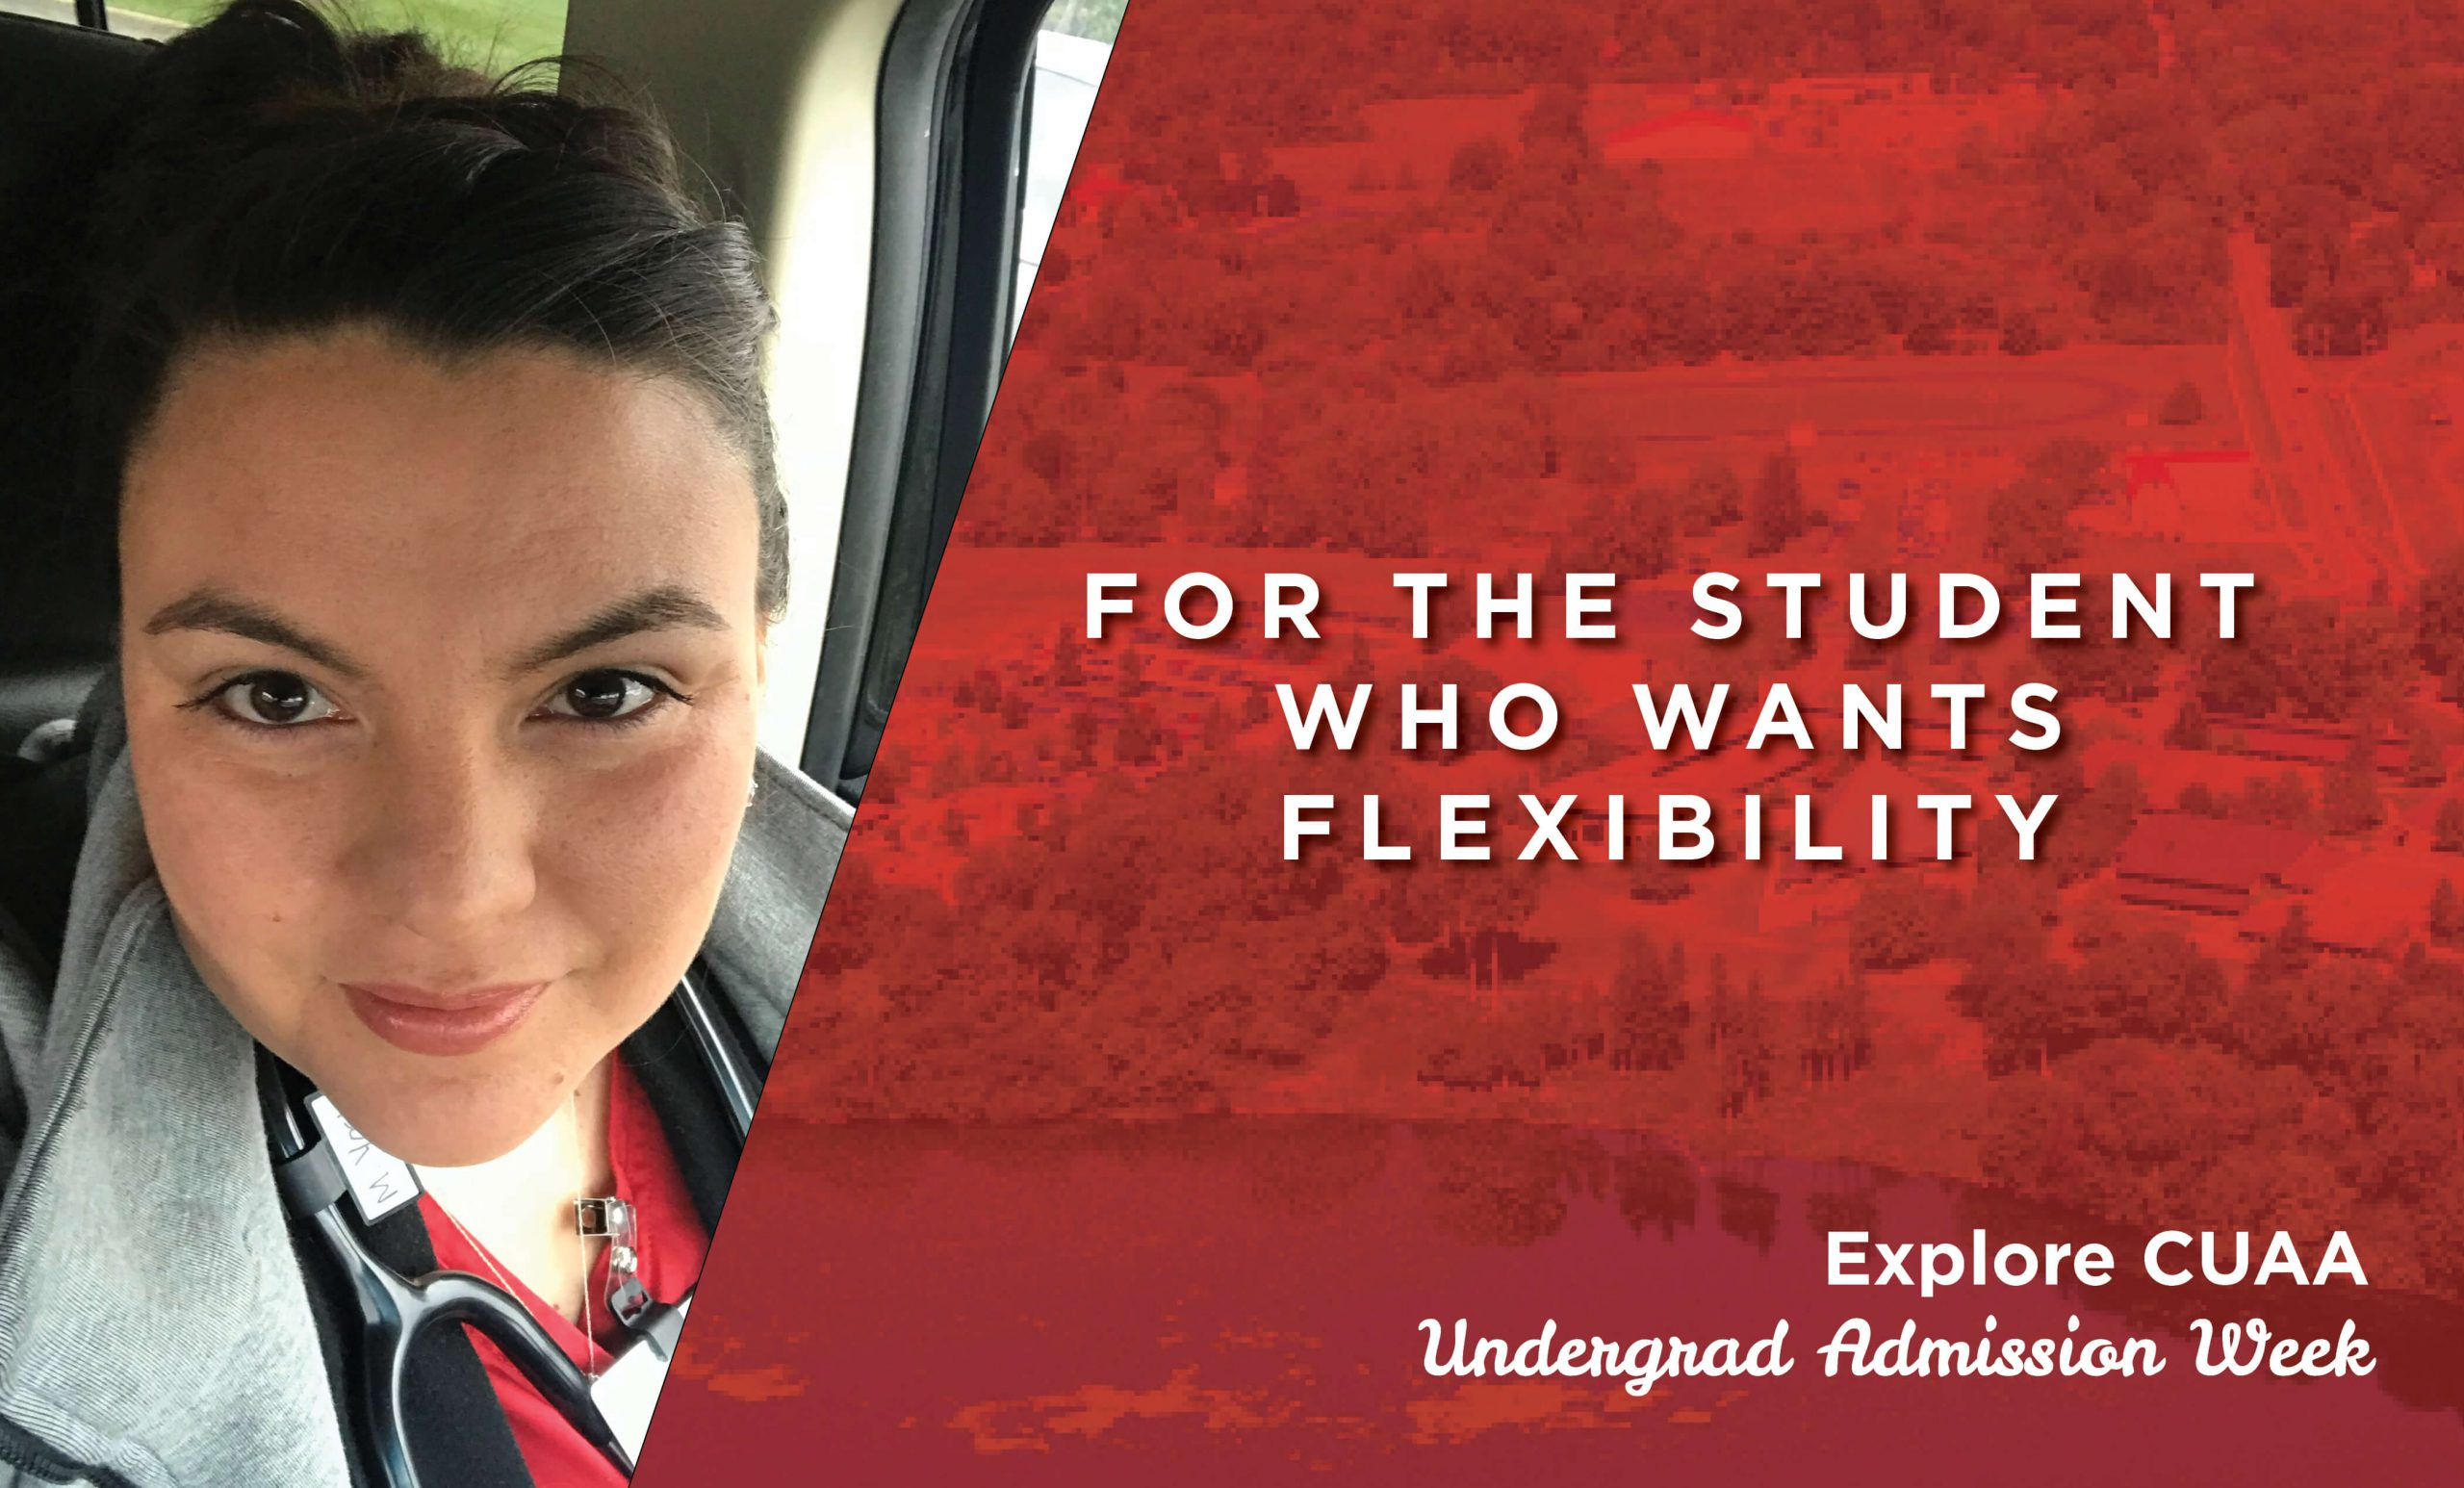 For the student who wants flexbility